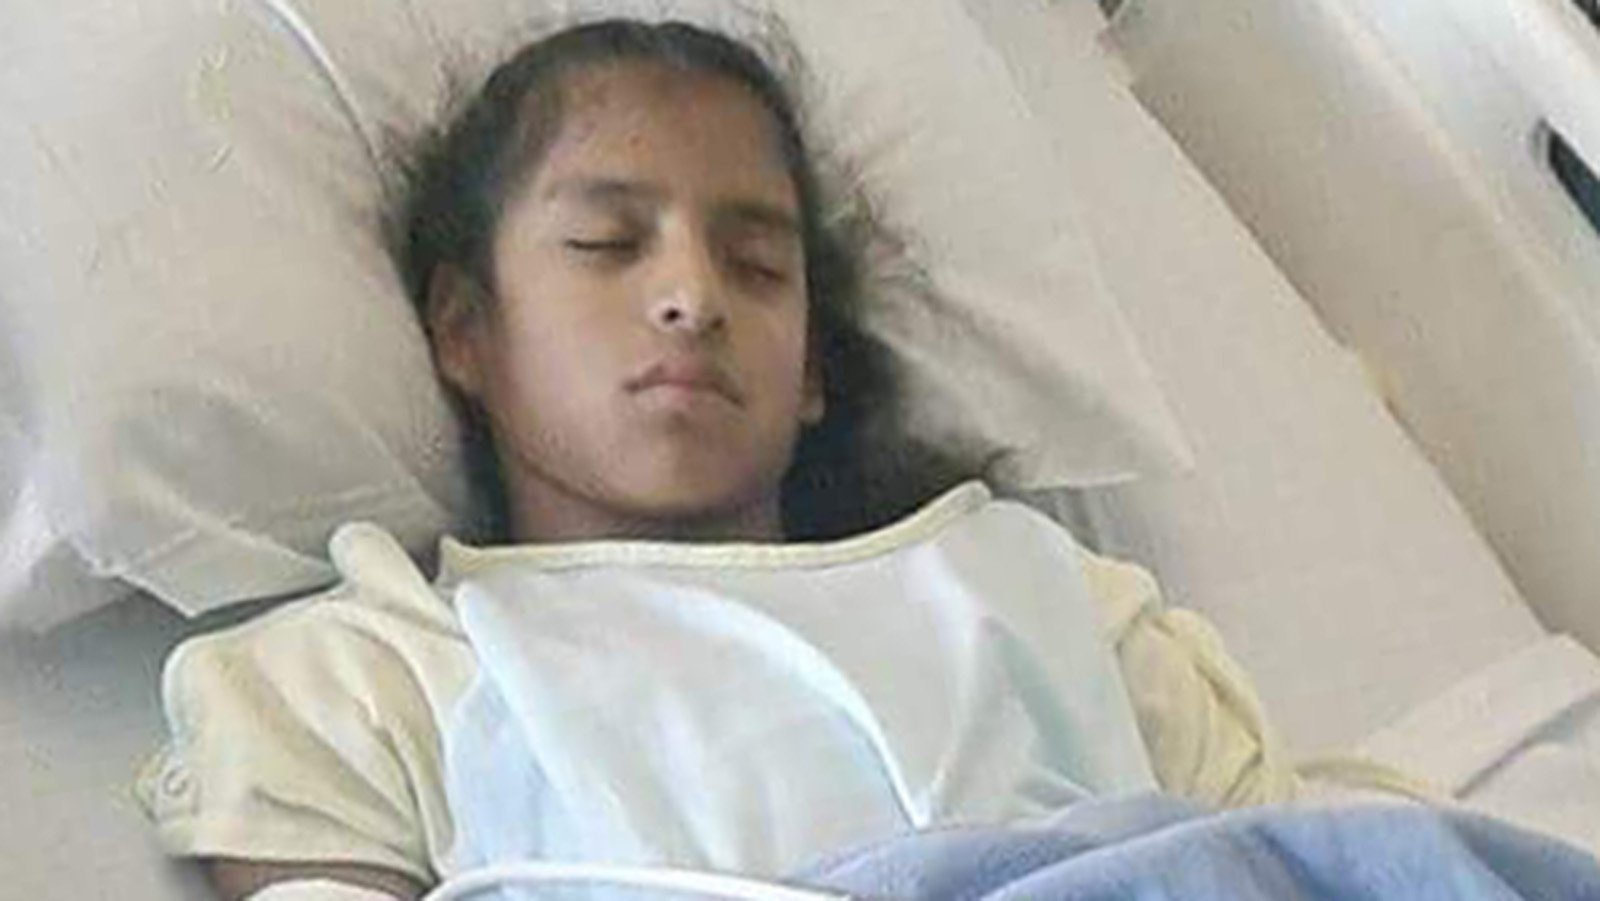 Texas girl, 10, with cerebral palsy faces deportation after trip to hospital